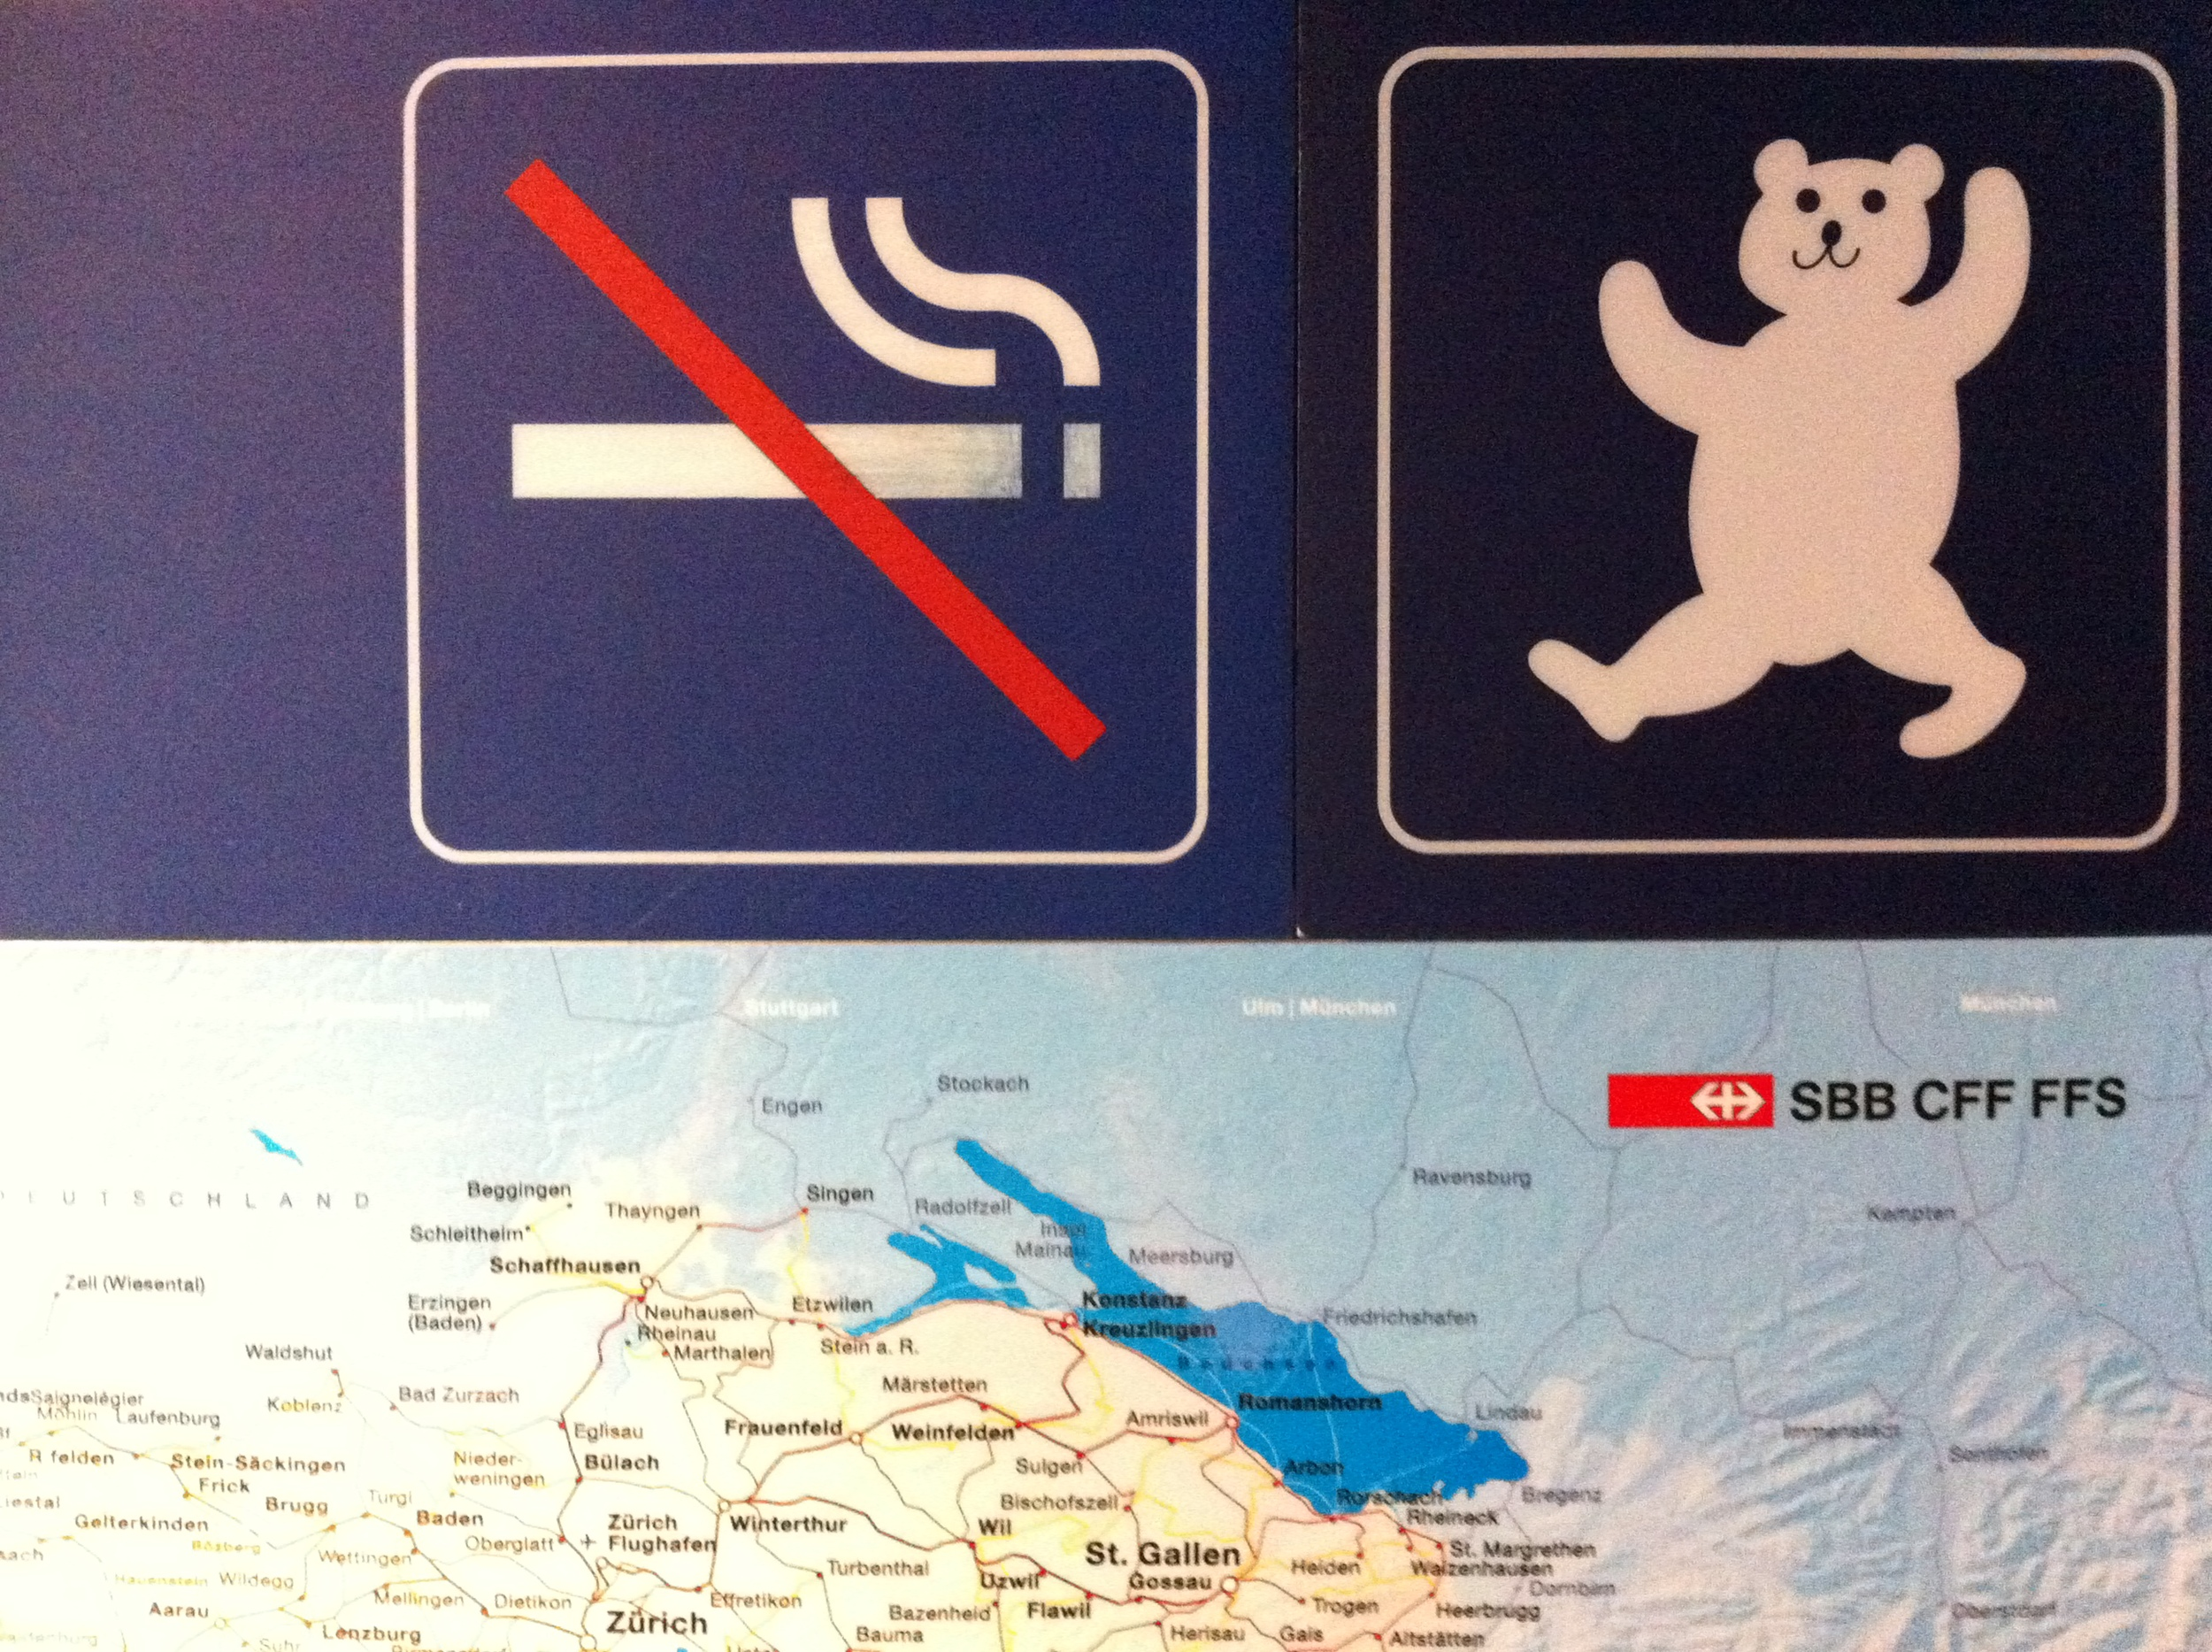 No smoking allowed. Dancing bears  are  permitted.